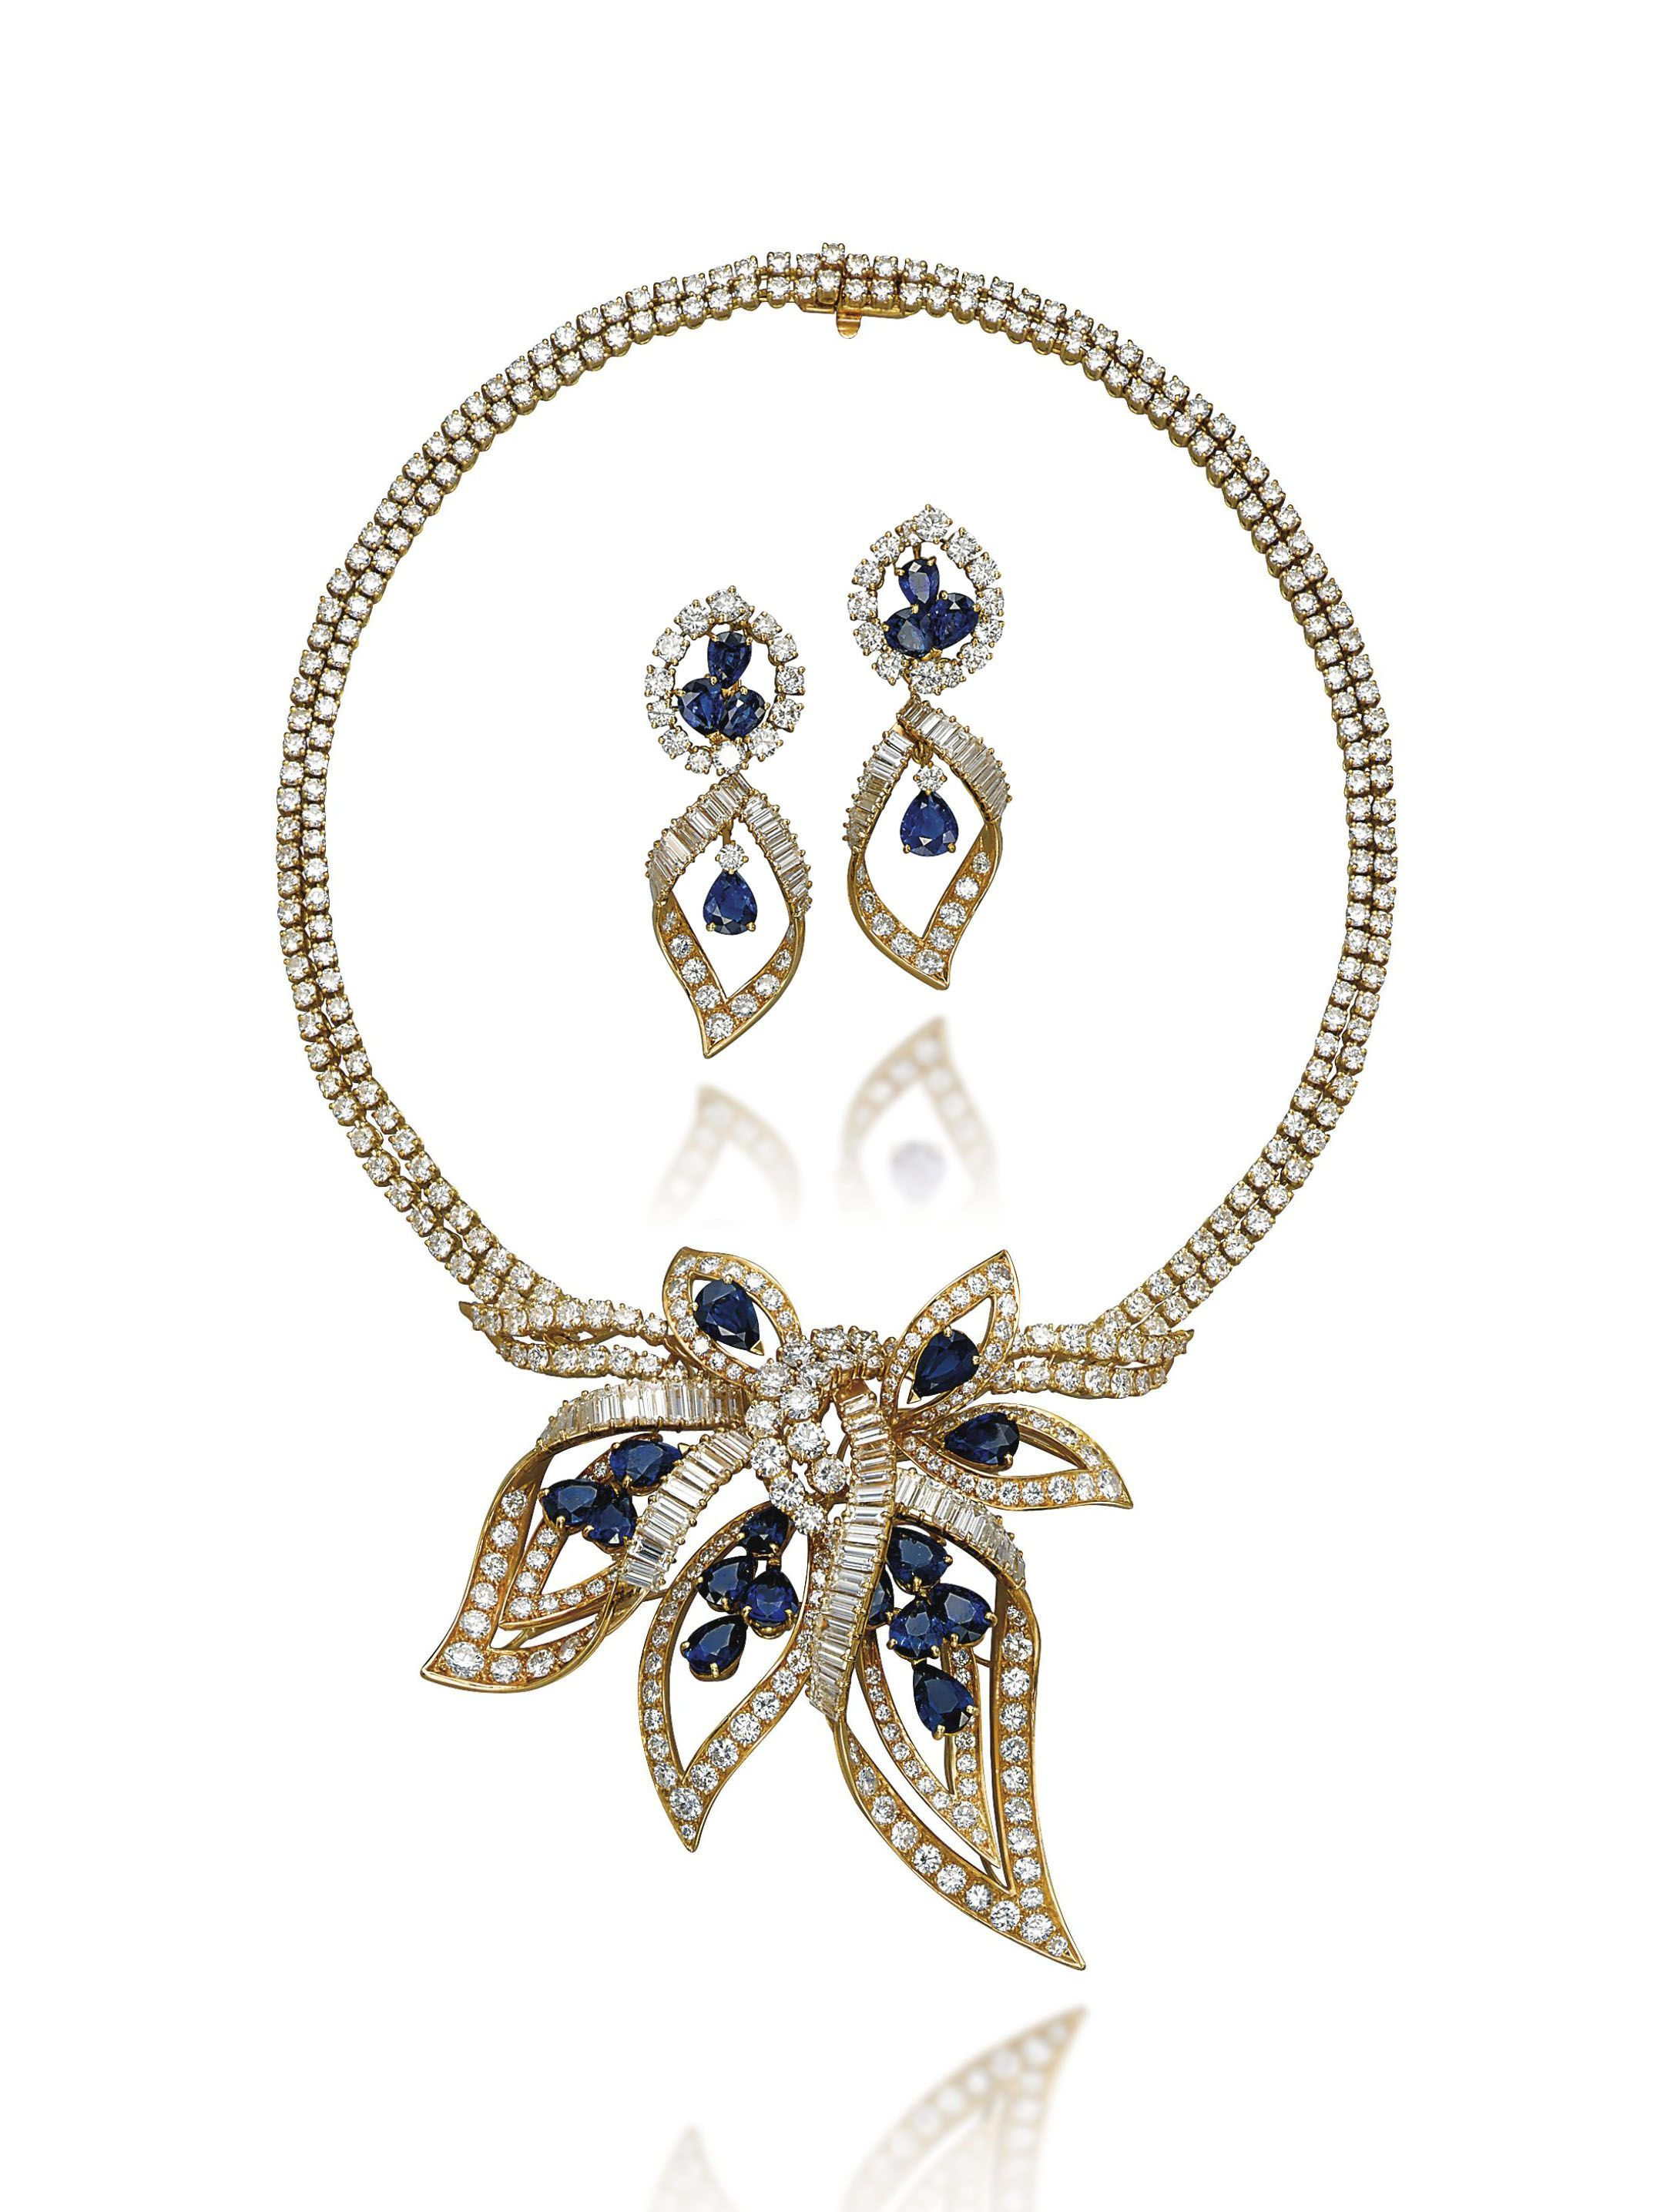 A set of sapphire and diamond jewellery comprising a necklace